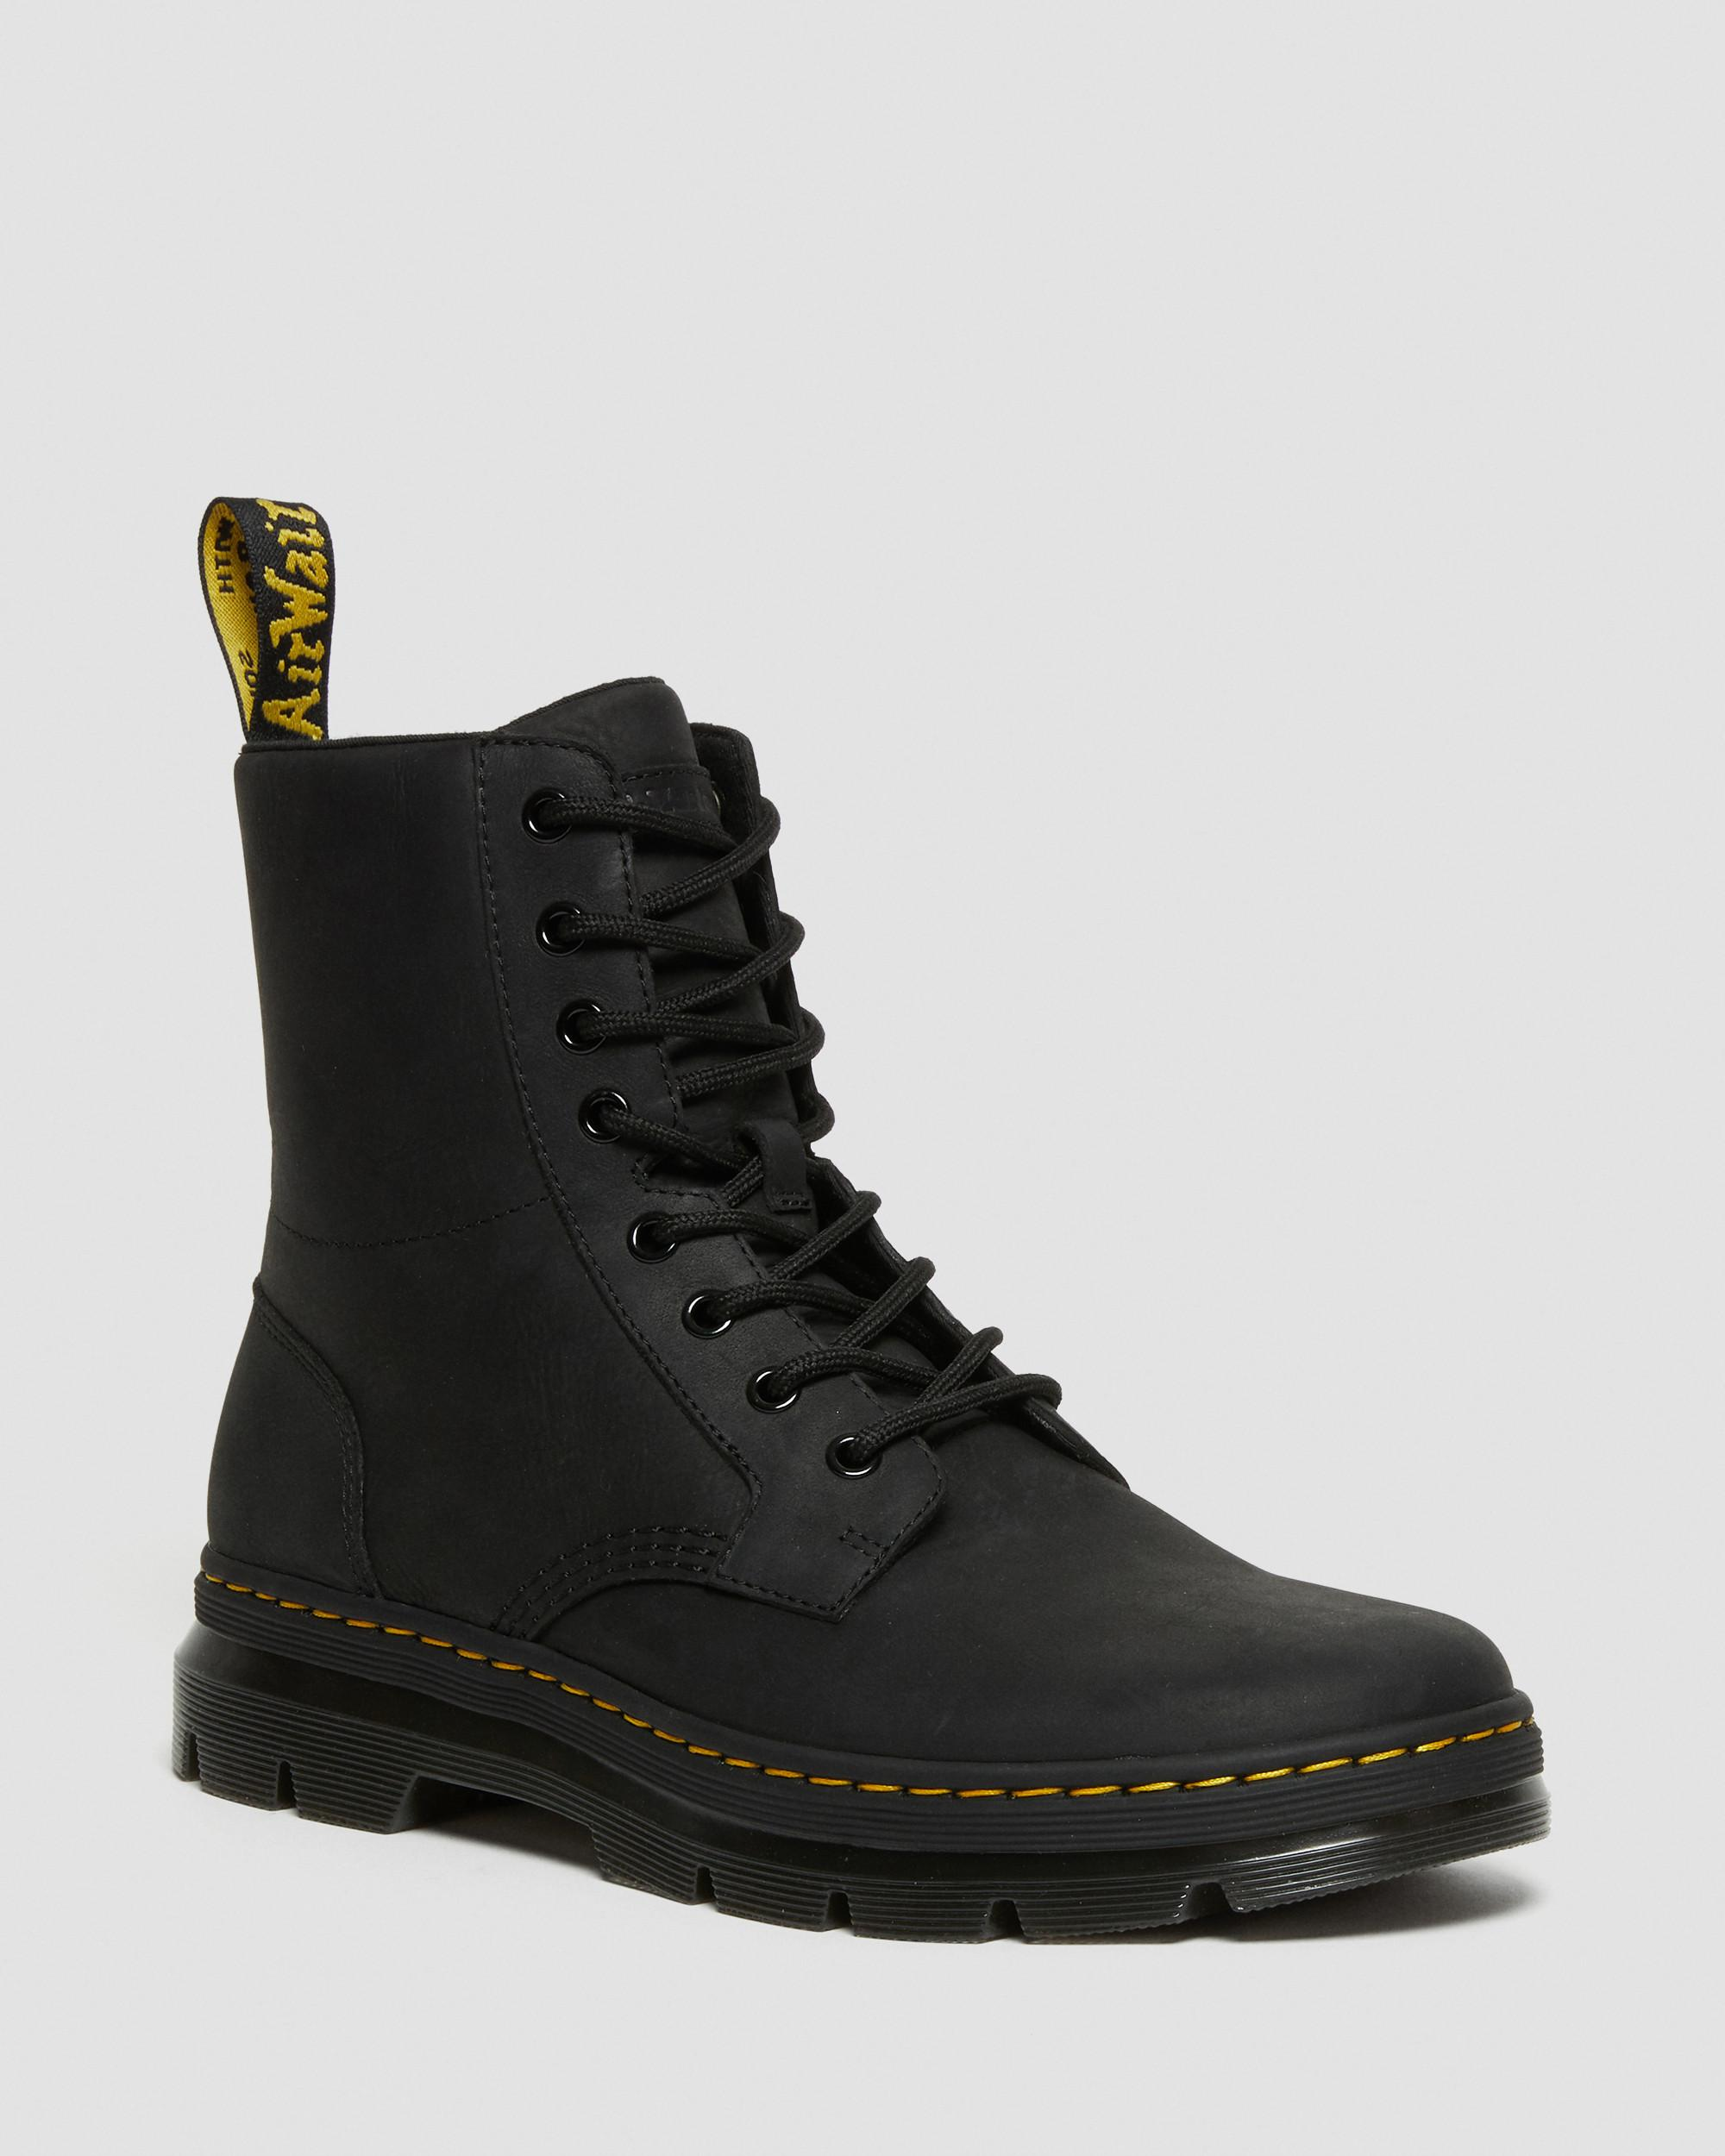 COMBS LEATHER CASUAL BOOTS   Dr. Martens